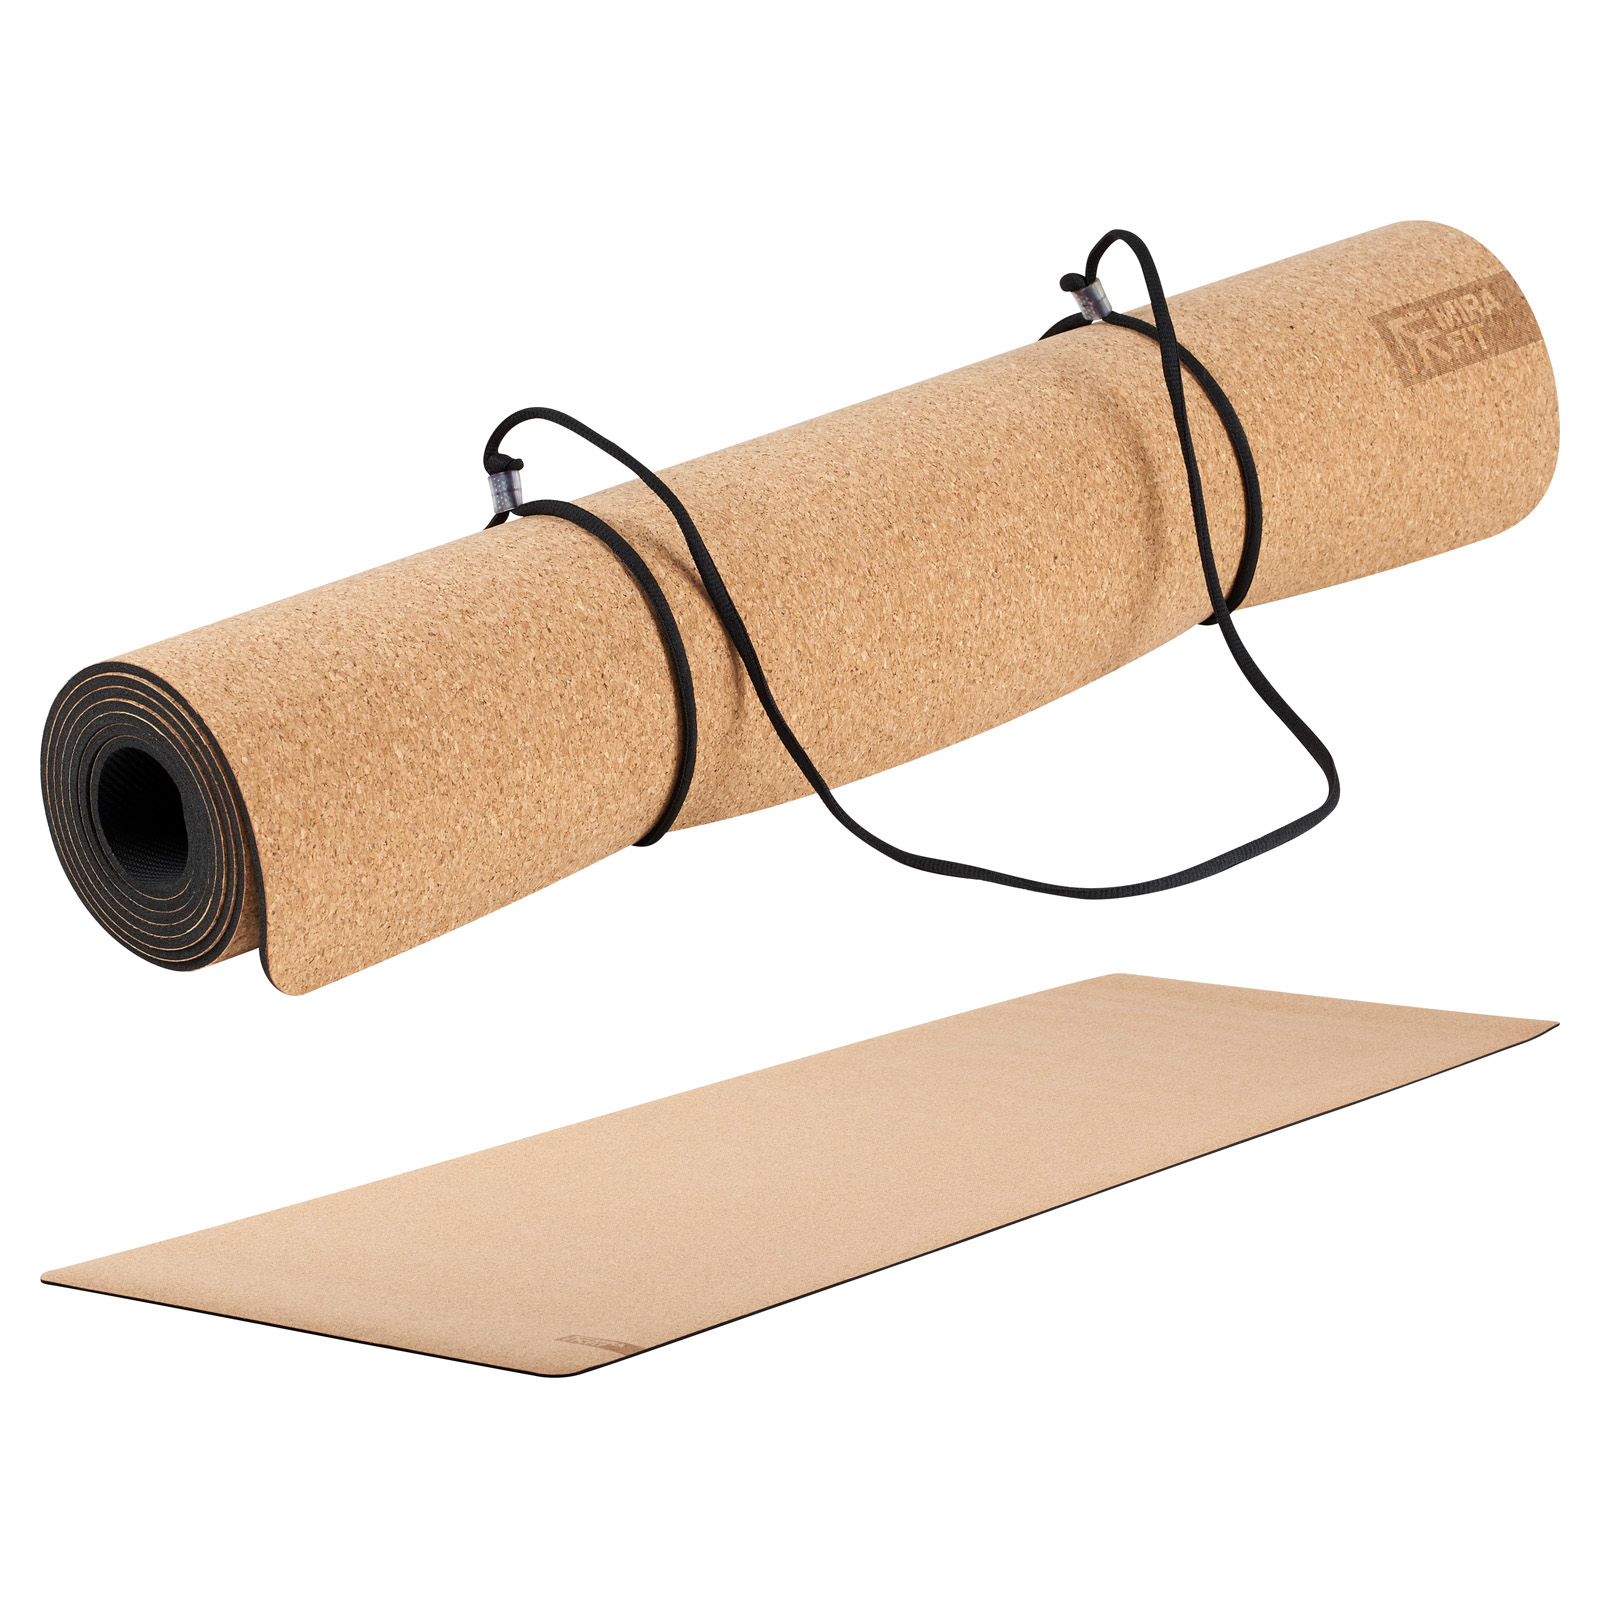 Mirafit 3.5mm Non Slip Natural Cork and Rubber Yoga/Pilates/Ab Exercise Mat Gym